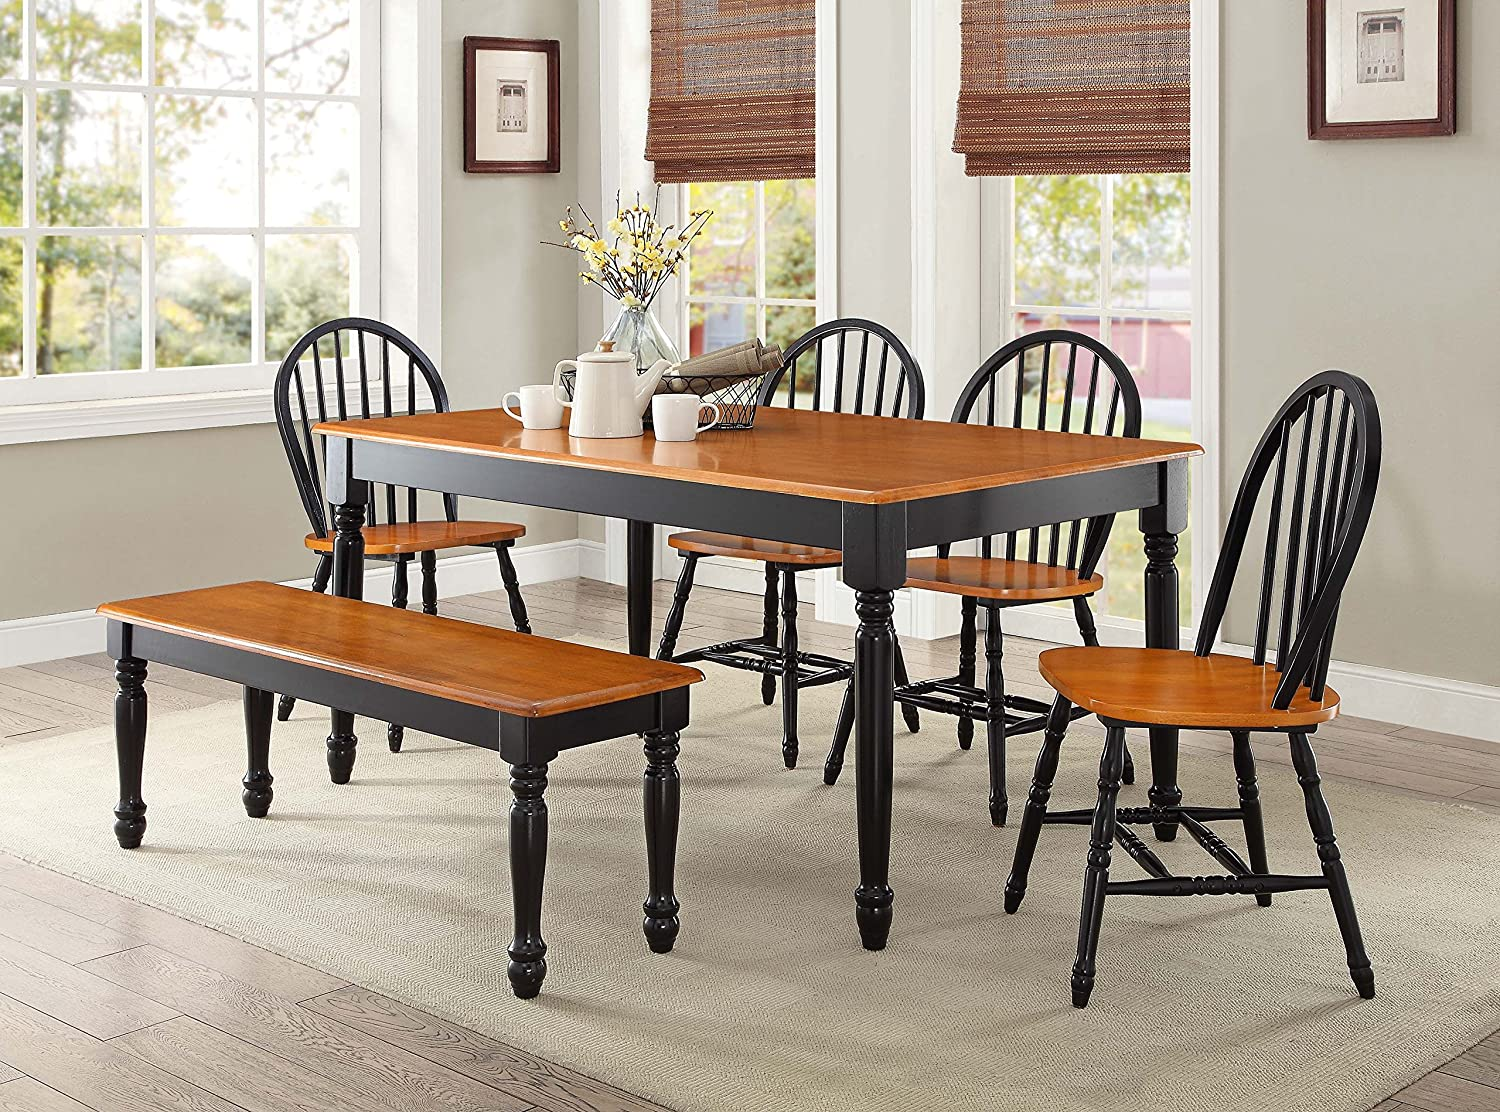 Amazon Com Better Homes And Gardens Autumn Lane 6 Piece Dining Set Black And Oak By Better Homes Garden Outdoor